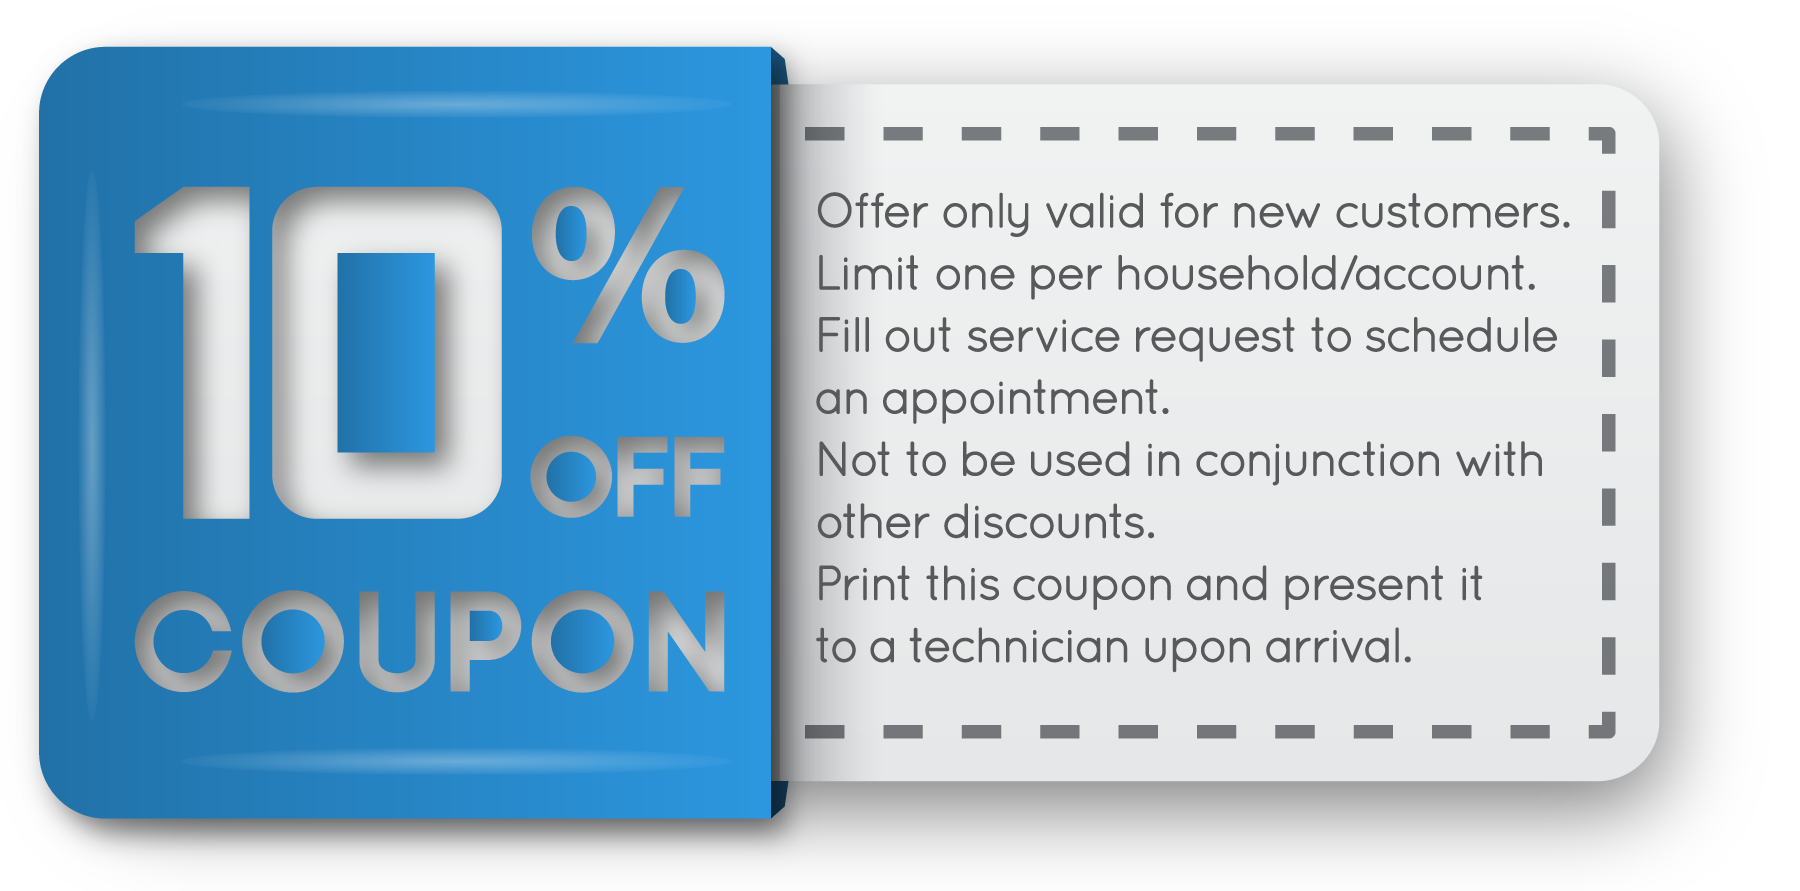 10% off coupon png. Busby s plumbing service